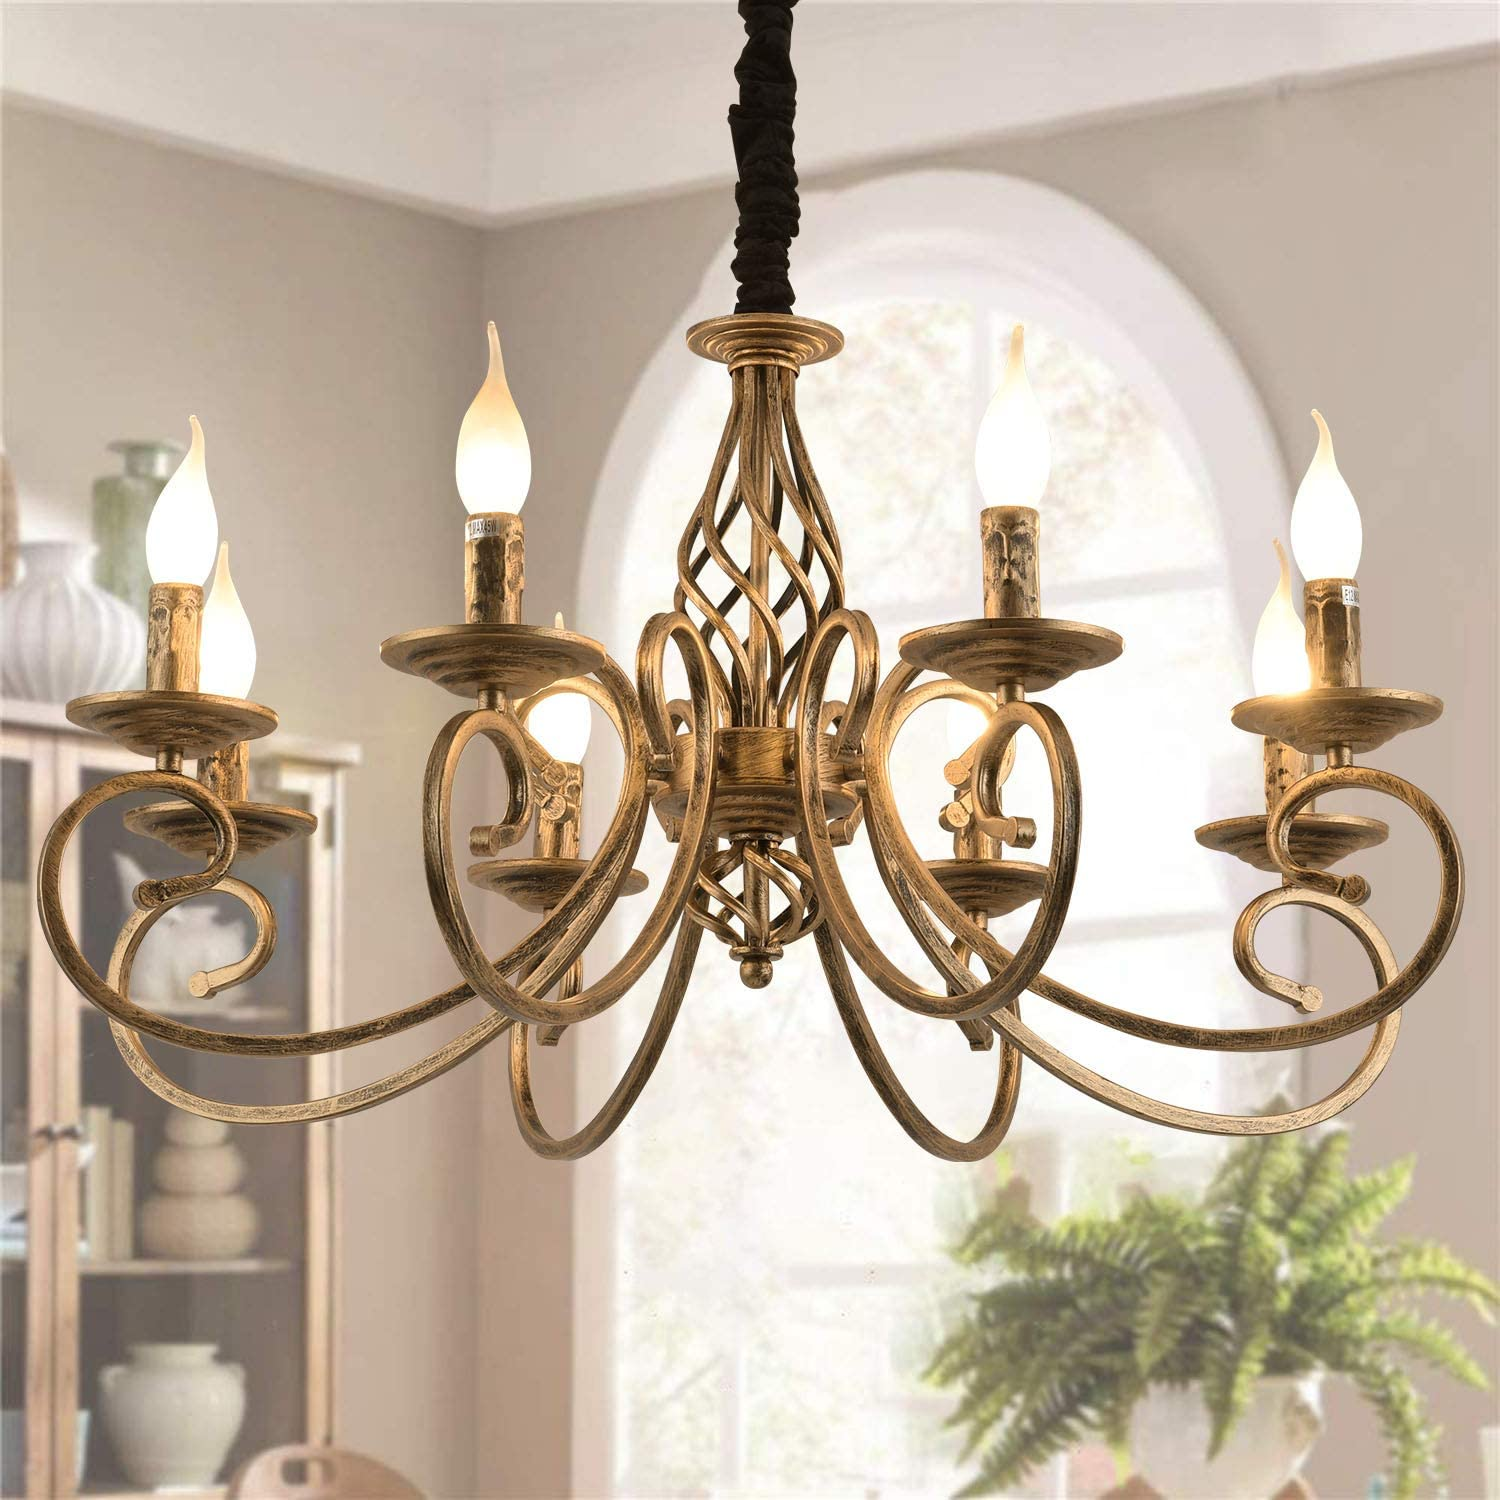 Ganeed Rustic French Country Vintage Chandeliers Antique Bronze Retro Light For Kitchen Farmhouse Dining Living Room Home Loft Chandeliers Aliexpress